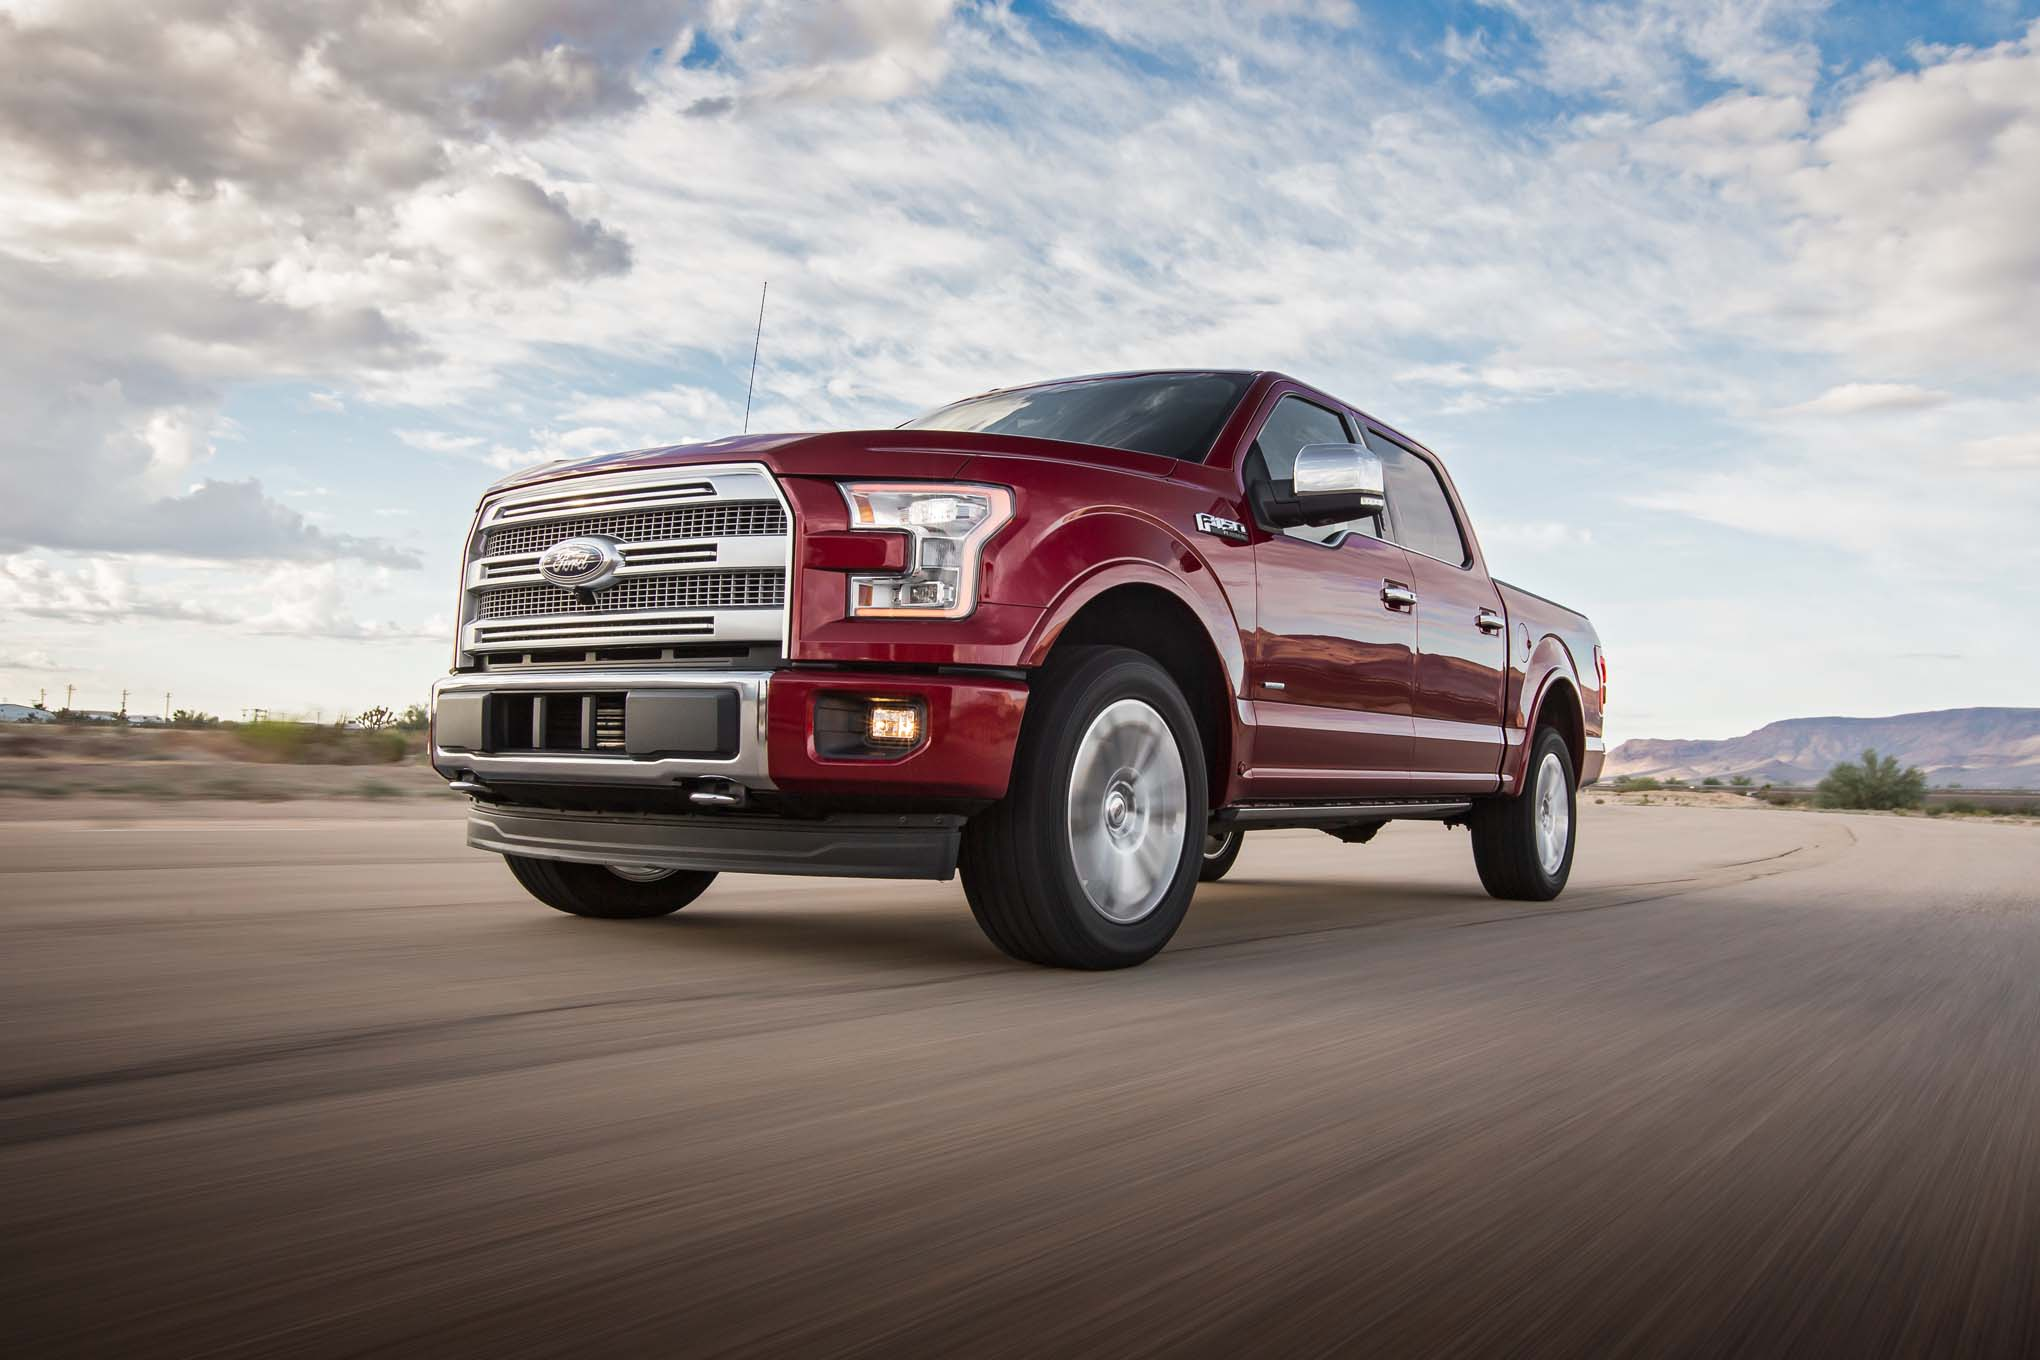 2017 Ford F 150 Platinum 4x4 EcoBoost Front Three Quarter In Motion 04